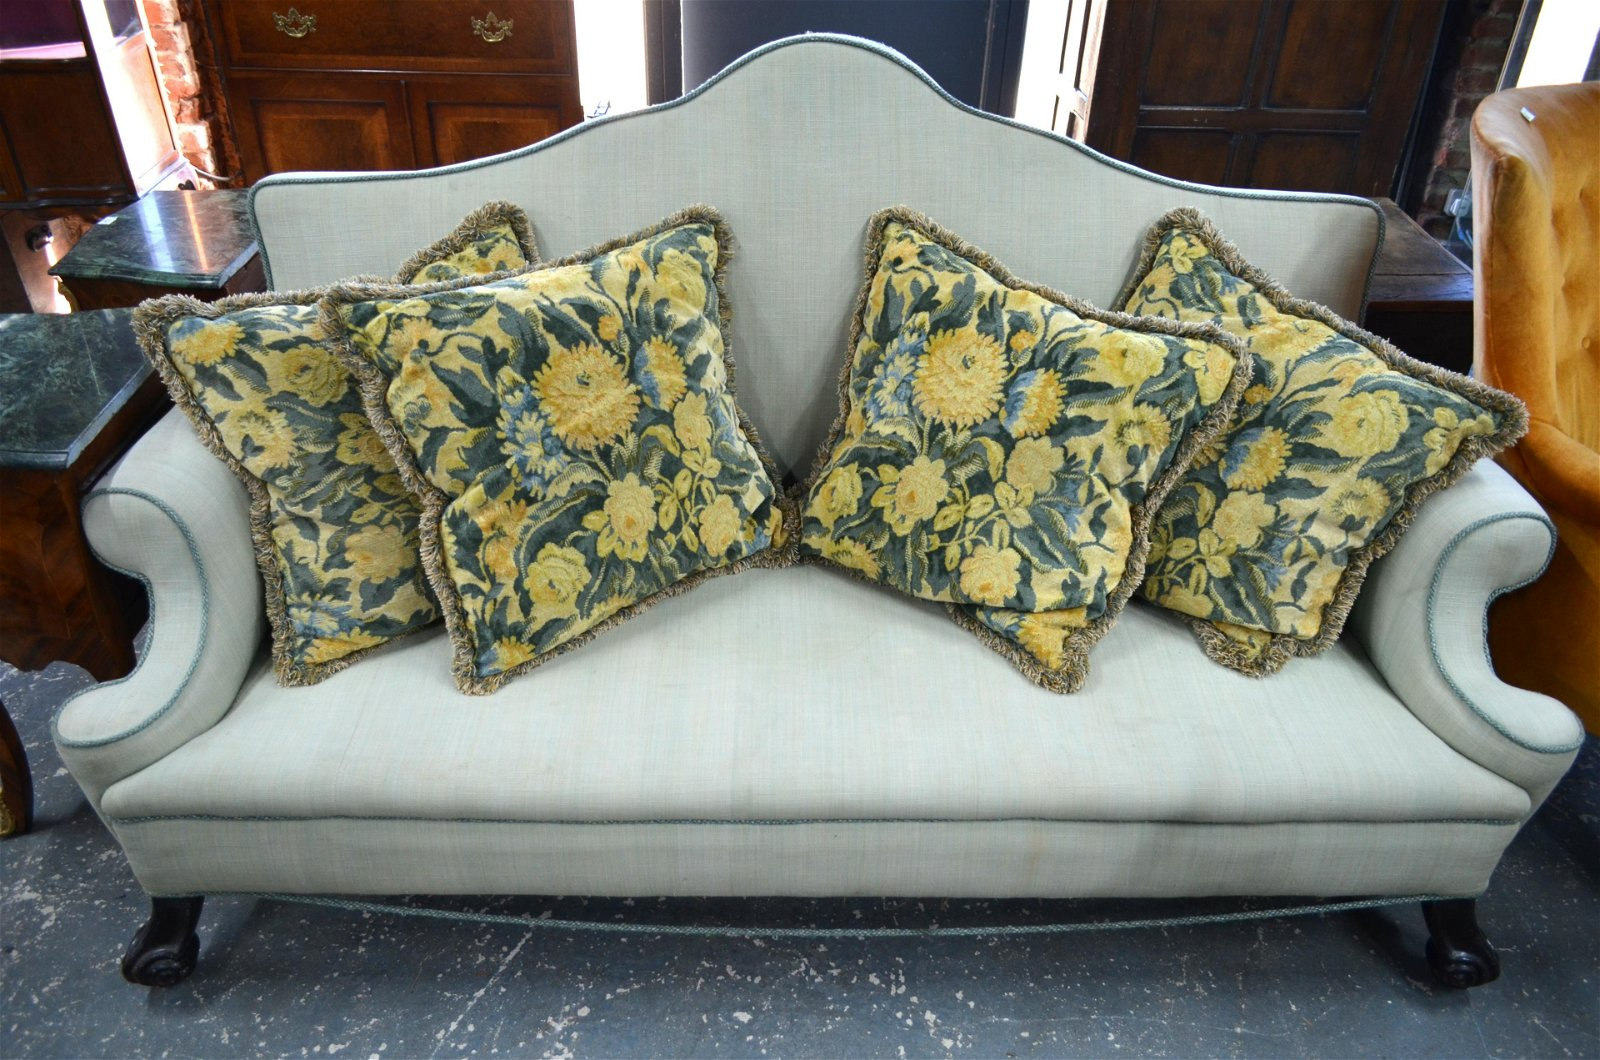 A Queen Anne style hump back sofa with scroll arms